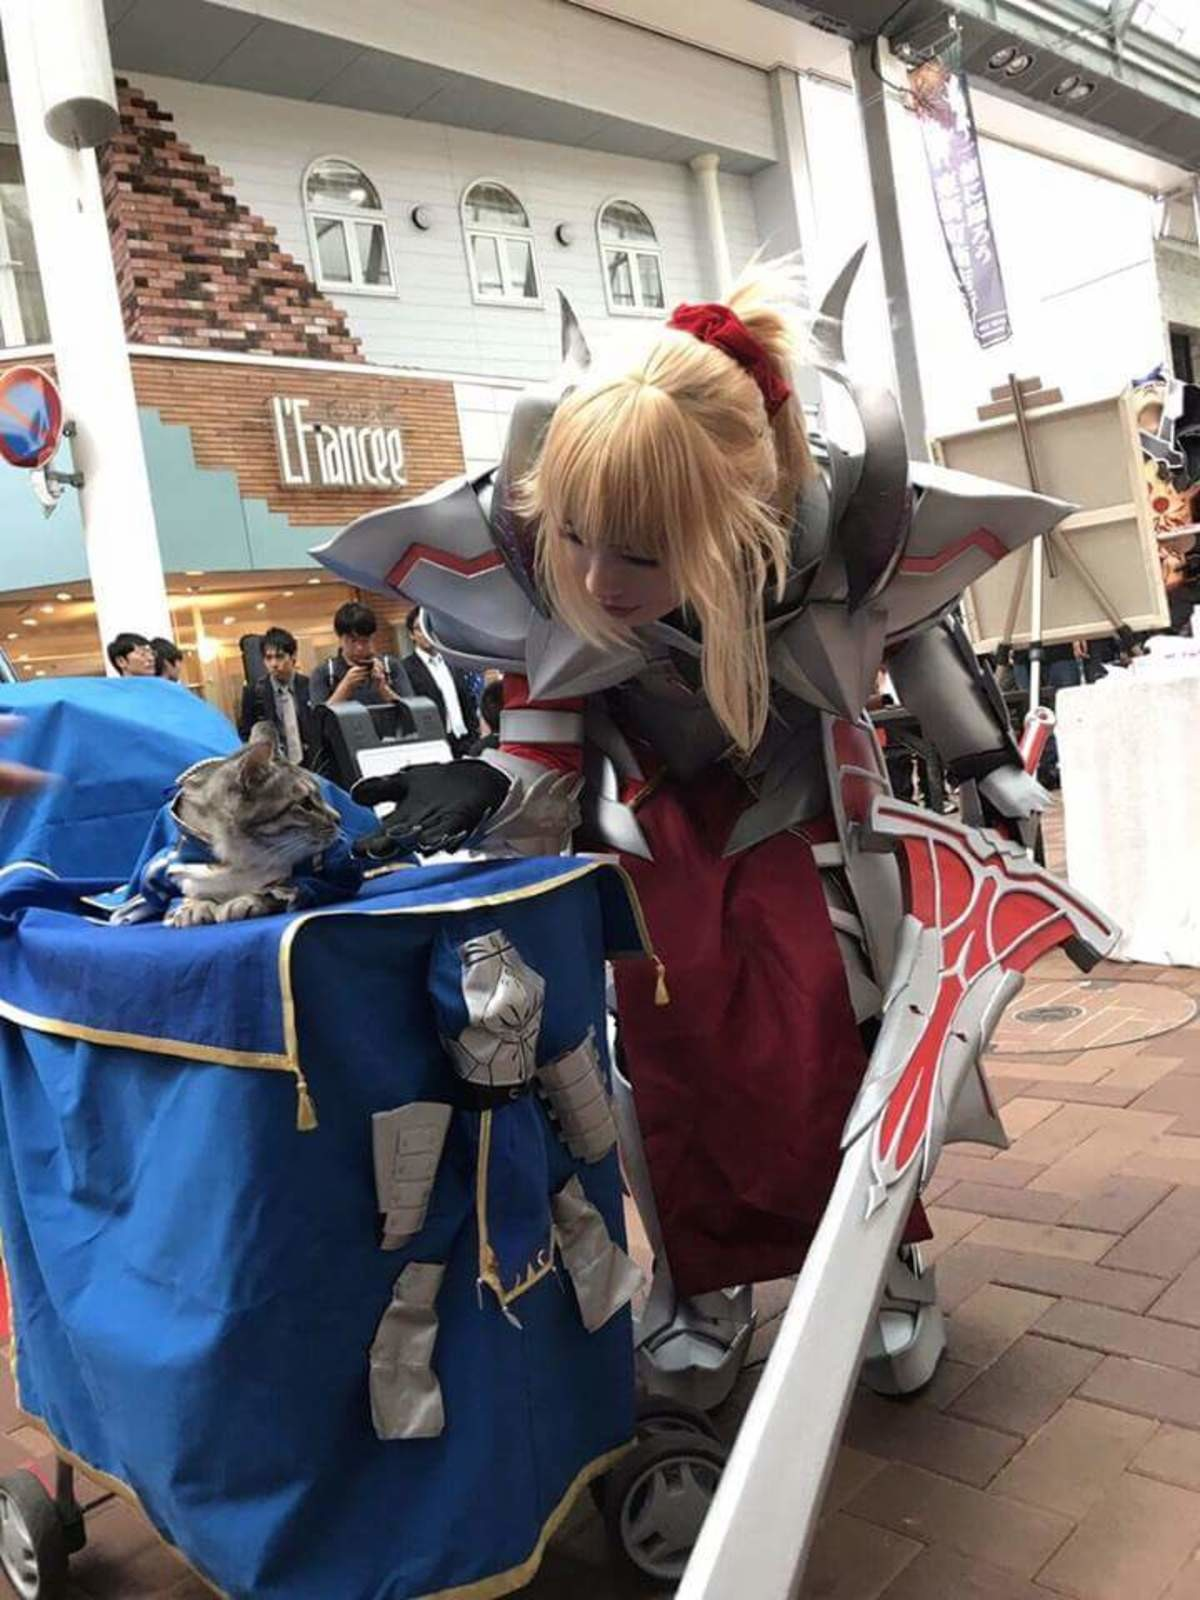 Saber Lion Irl. join list: Lewds4DHeart (1586 subs)Mention History join list:. Smug as